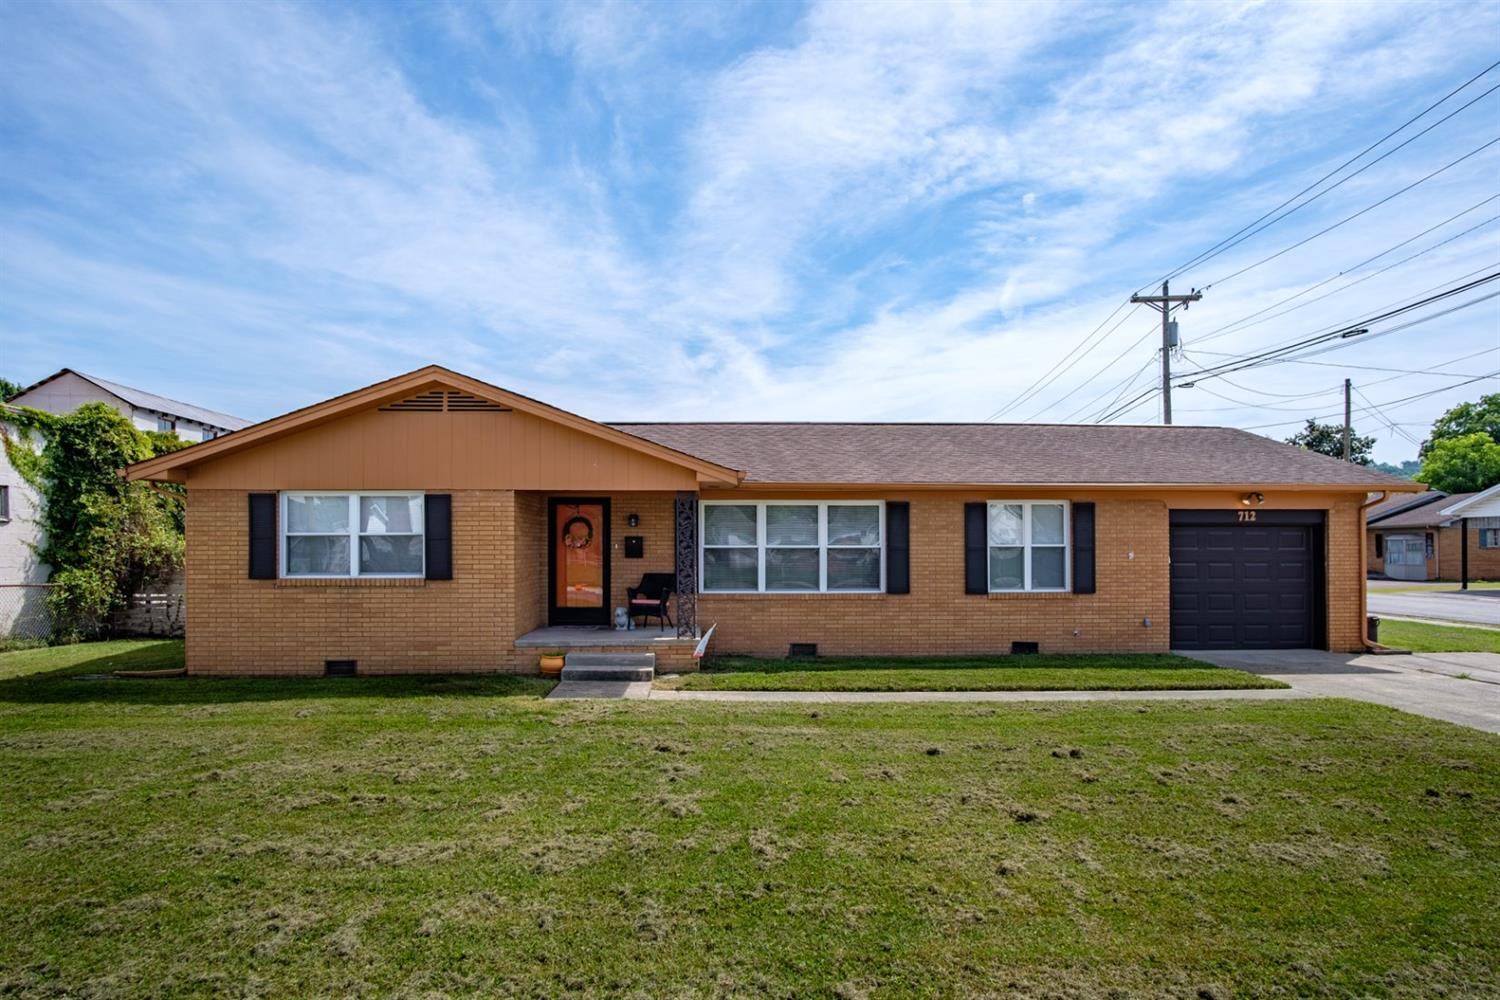 712 N Main St, Barbourville, KY 40906